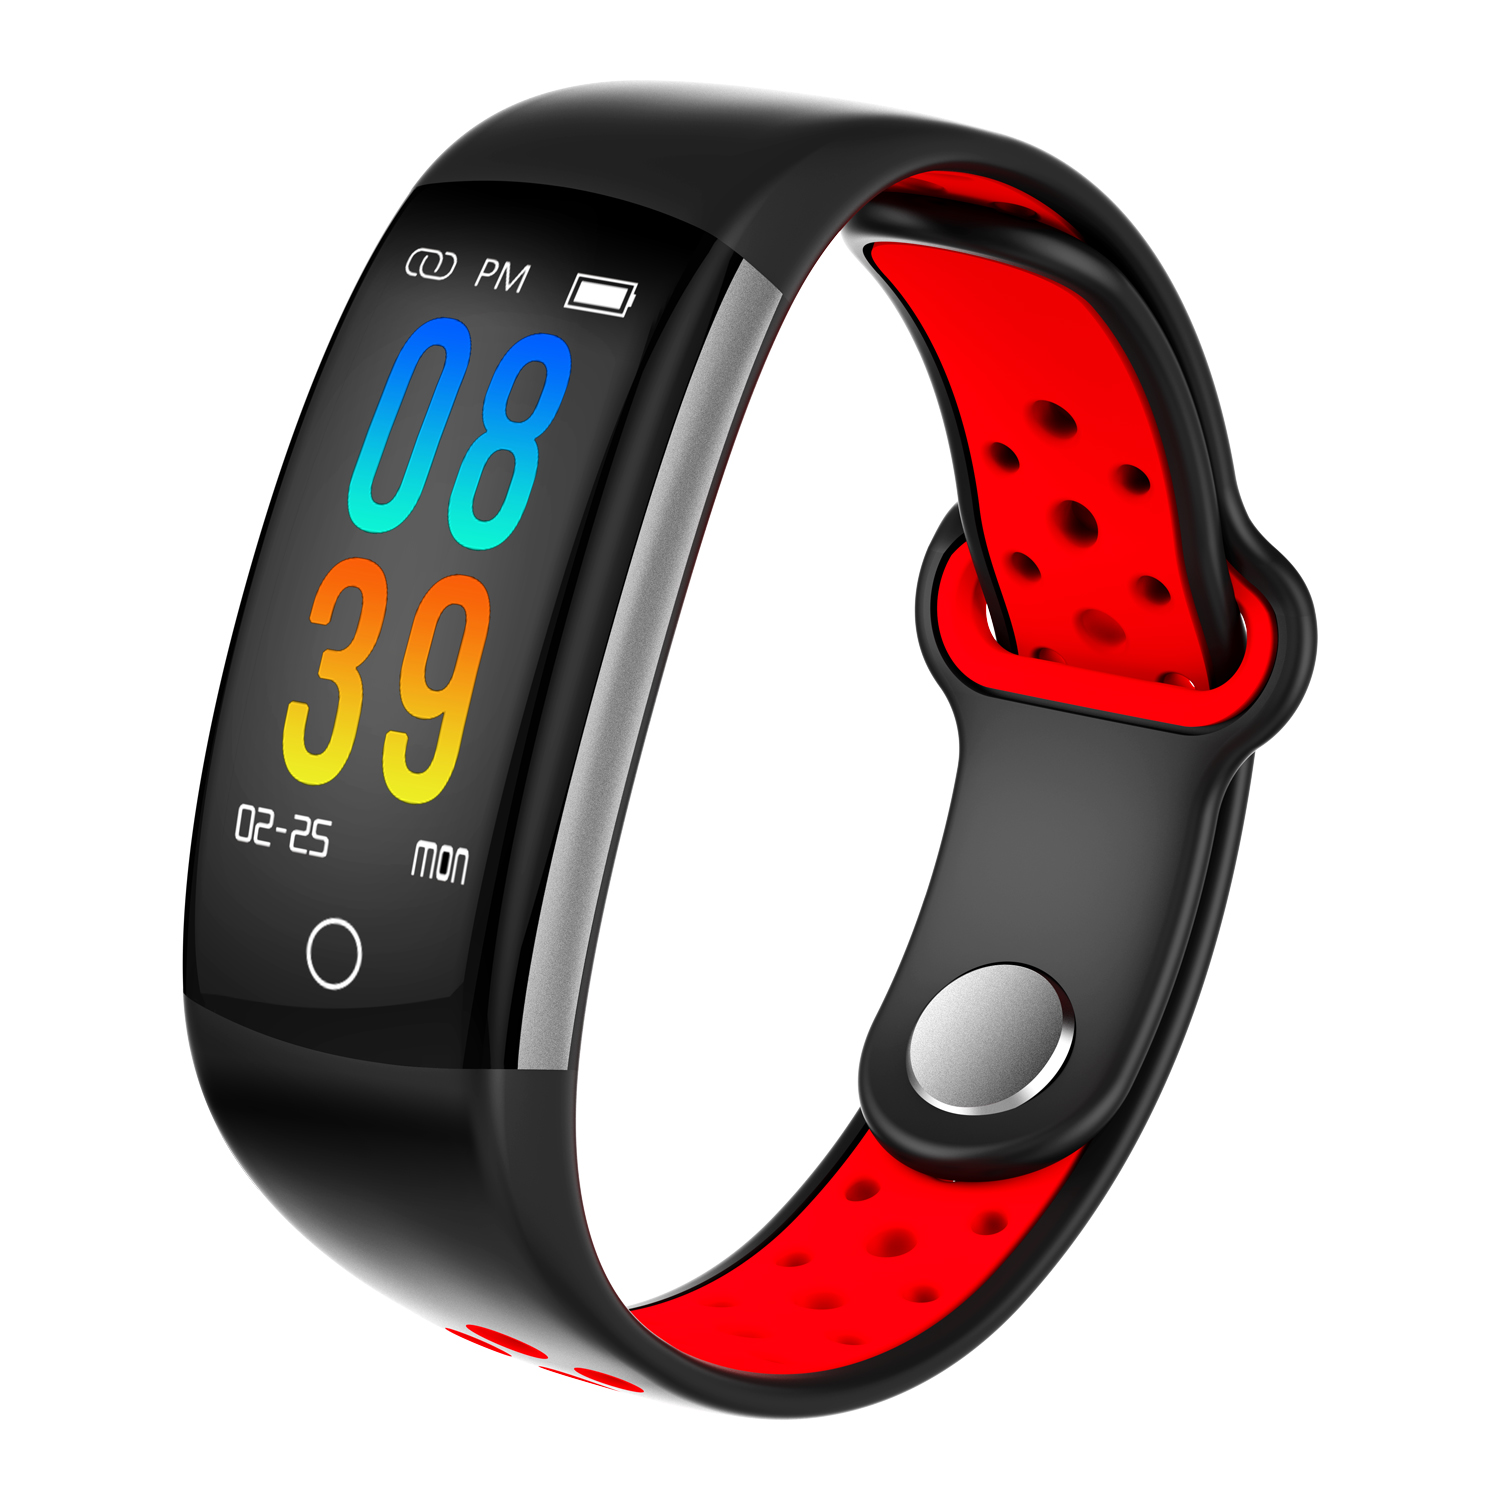 Wholesale Q6-Red Bluetooth Fitness Tracker - Heartrate Monitor, Pedometer, Calorie Counter, Notificaions, Calls, , 0.96 Inch Display Ip68